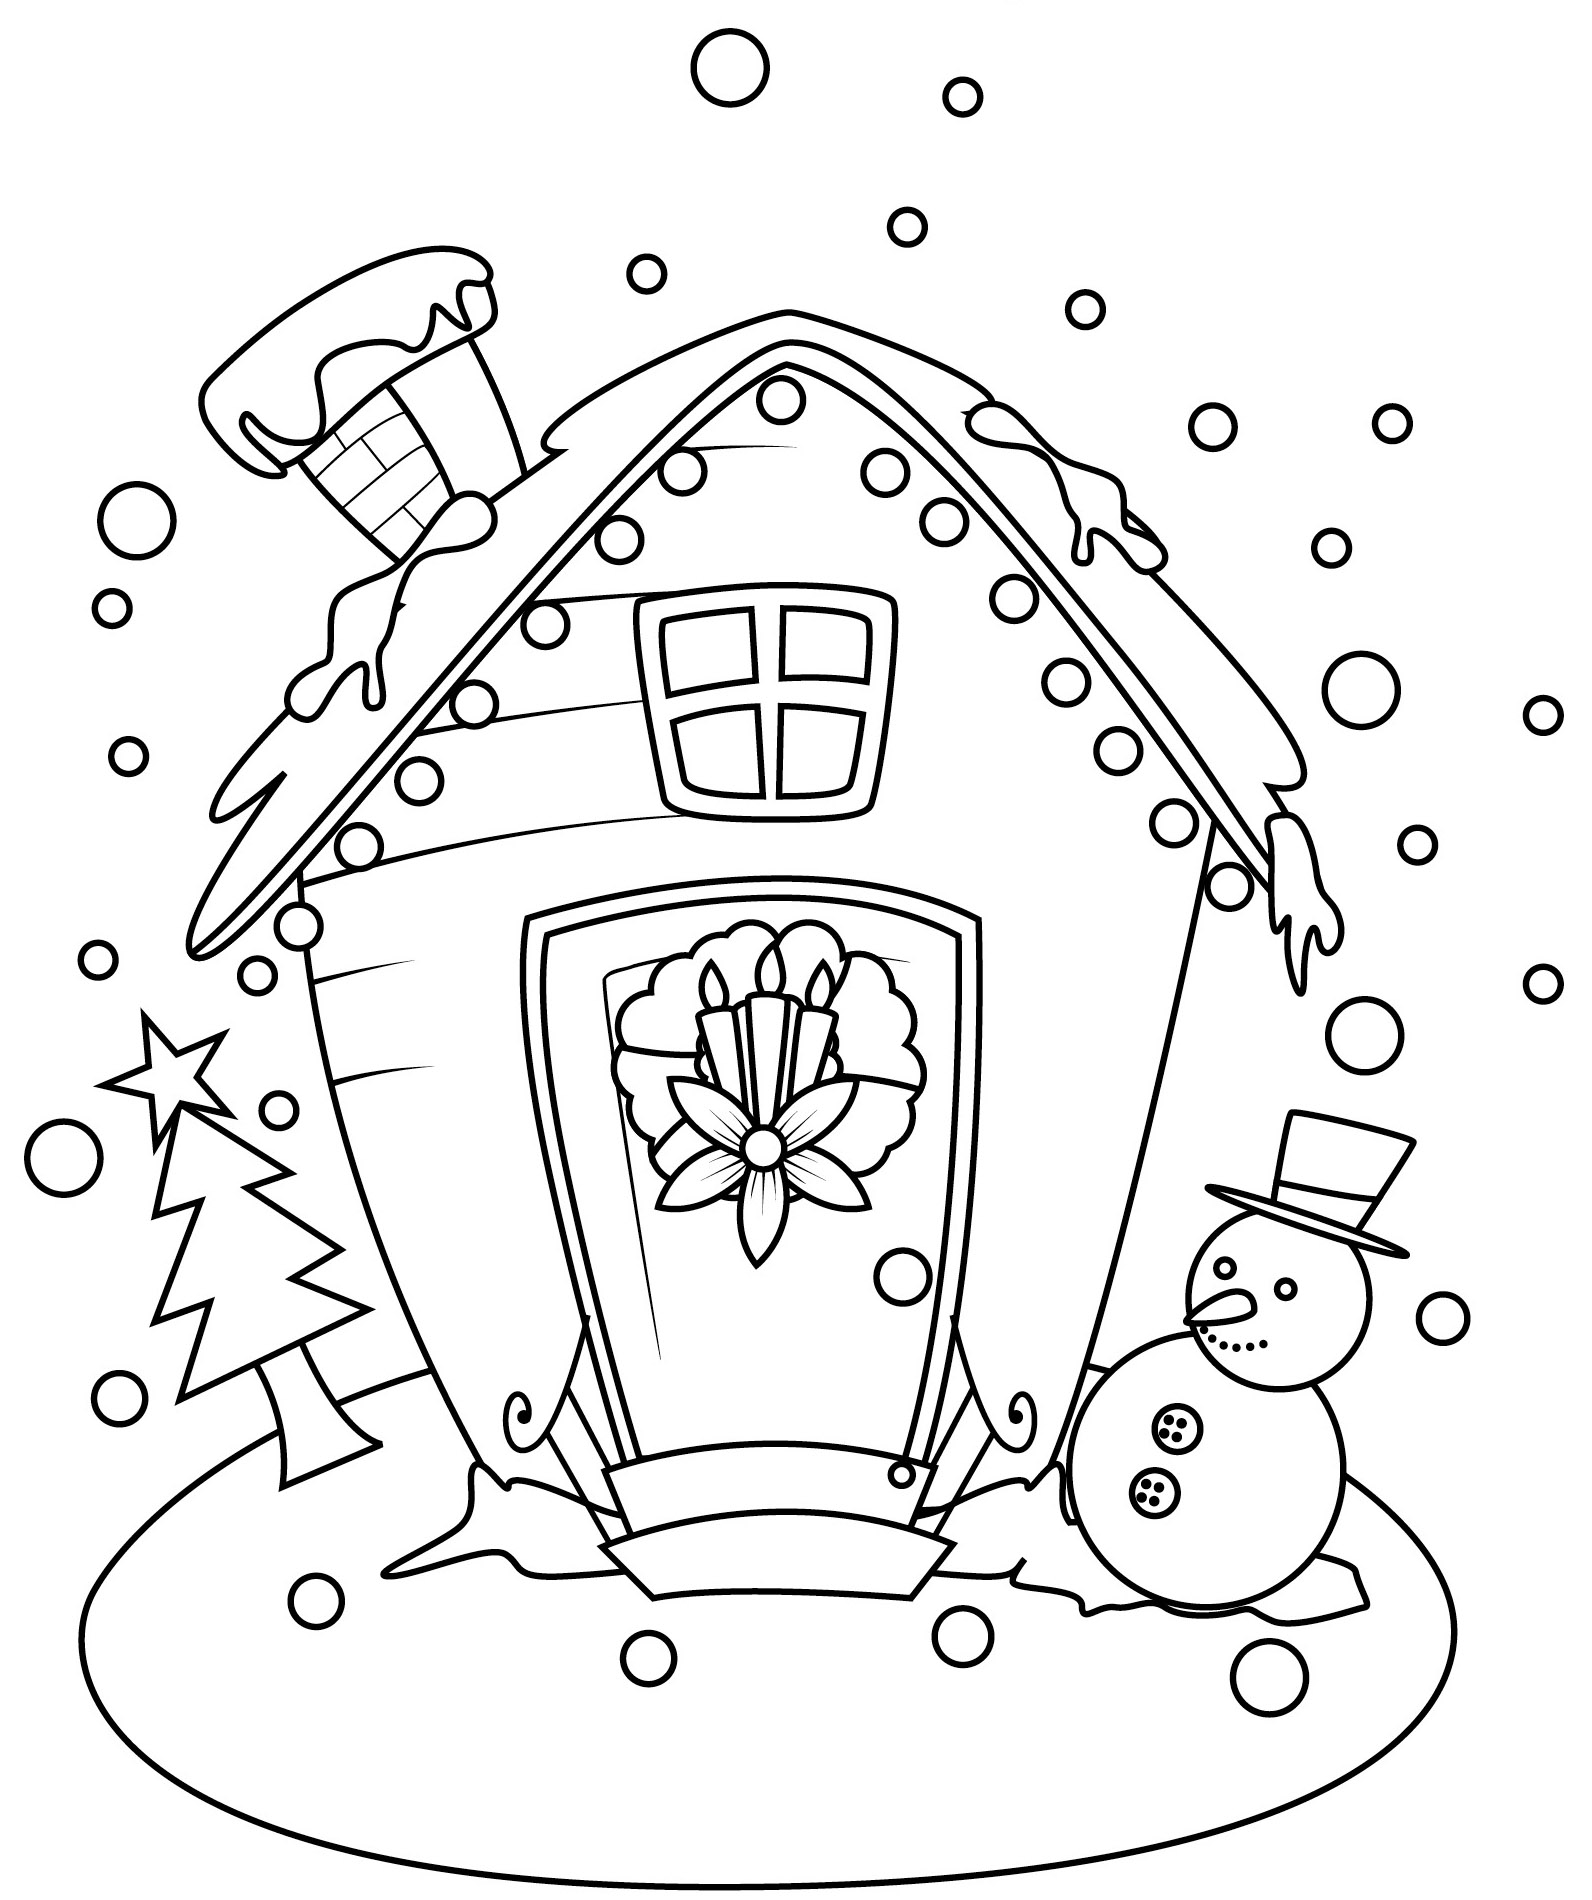 Kids\' Coloring Cards for the Holidays - Make It RightMake It Right